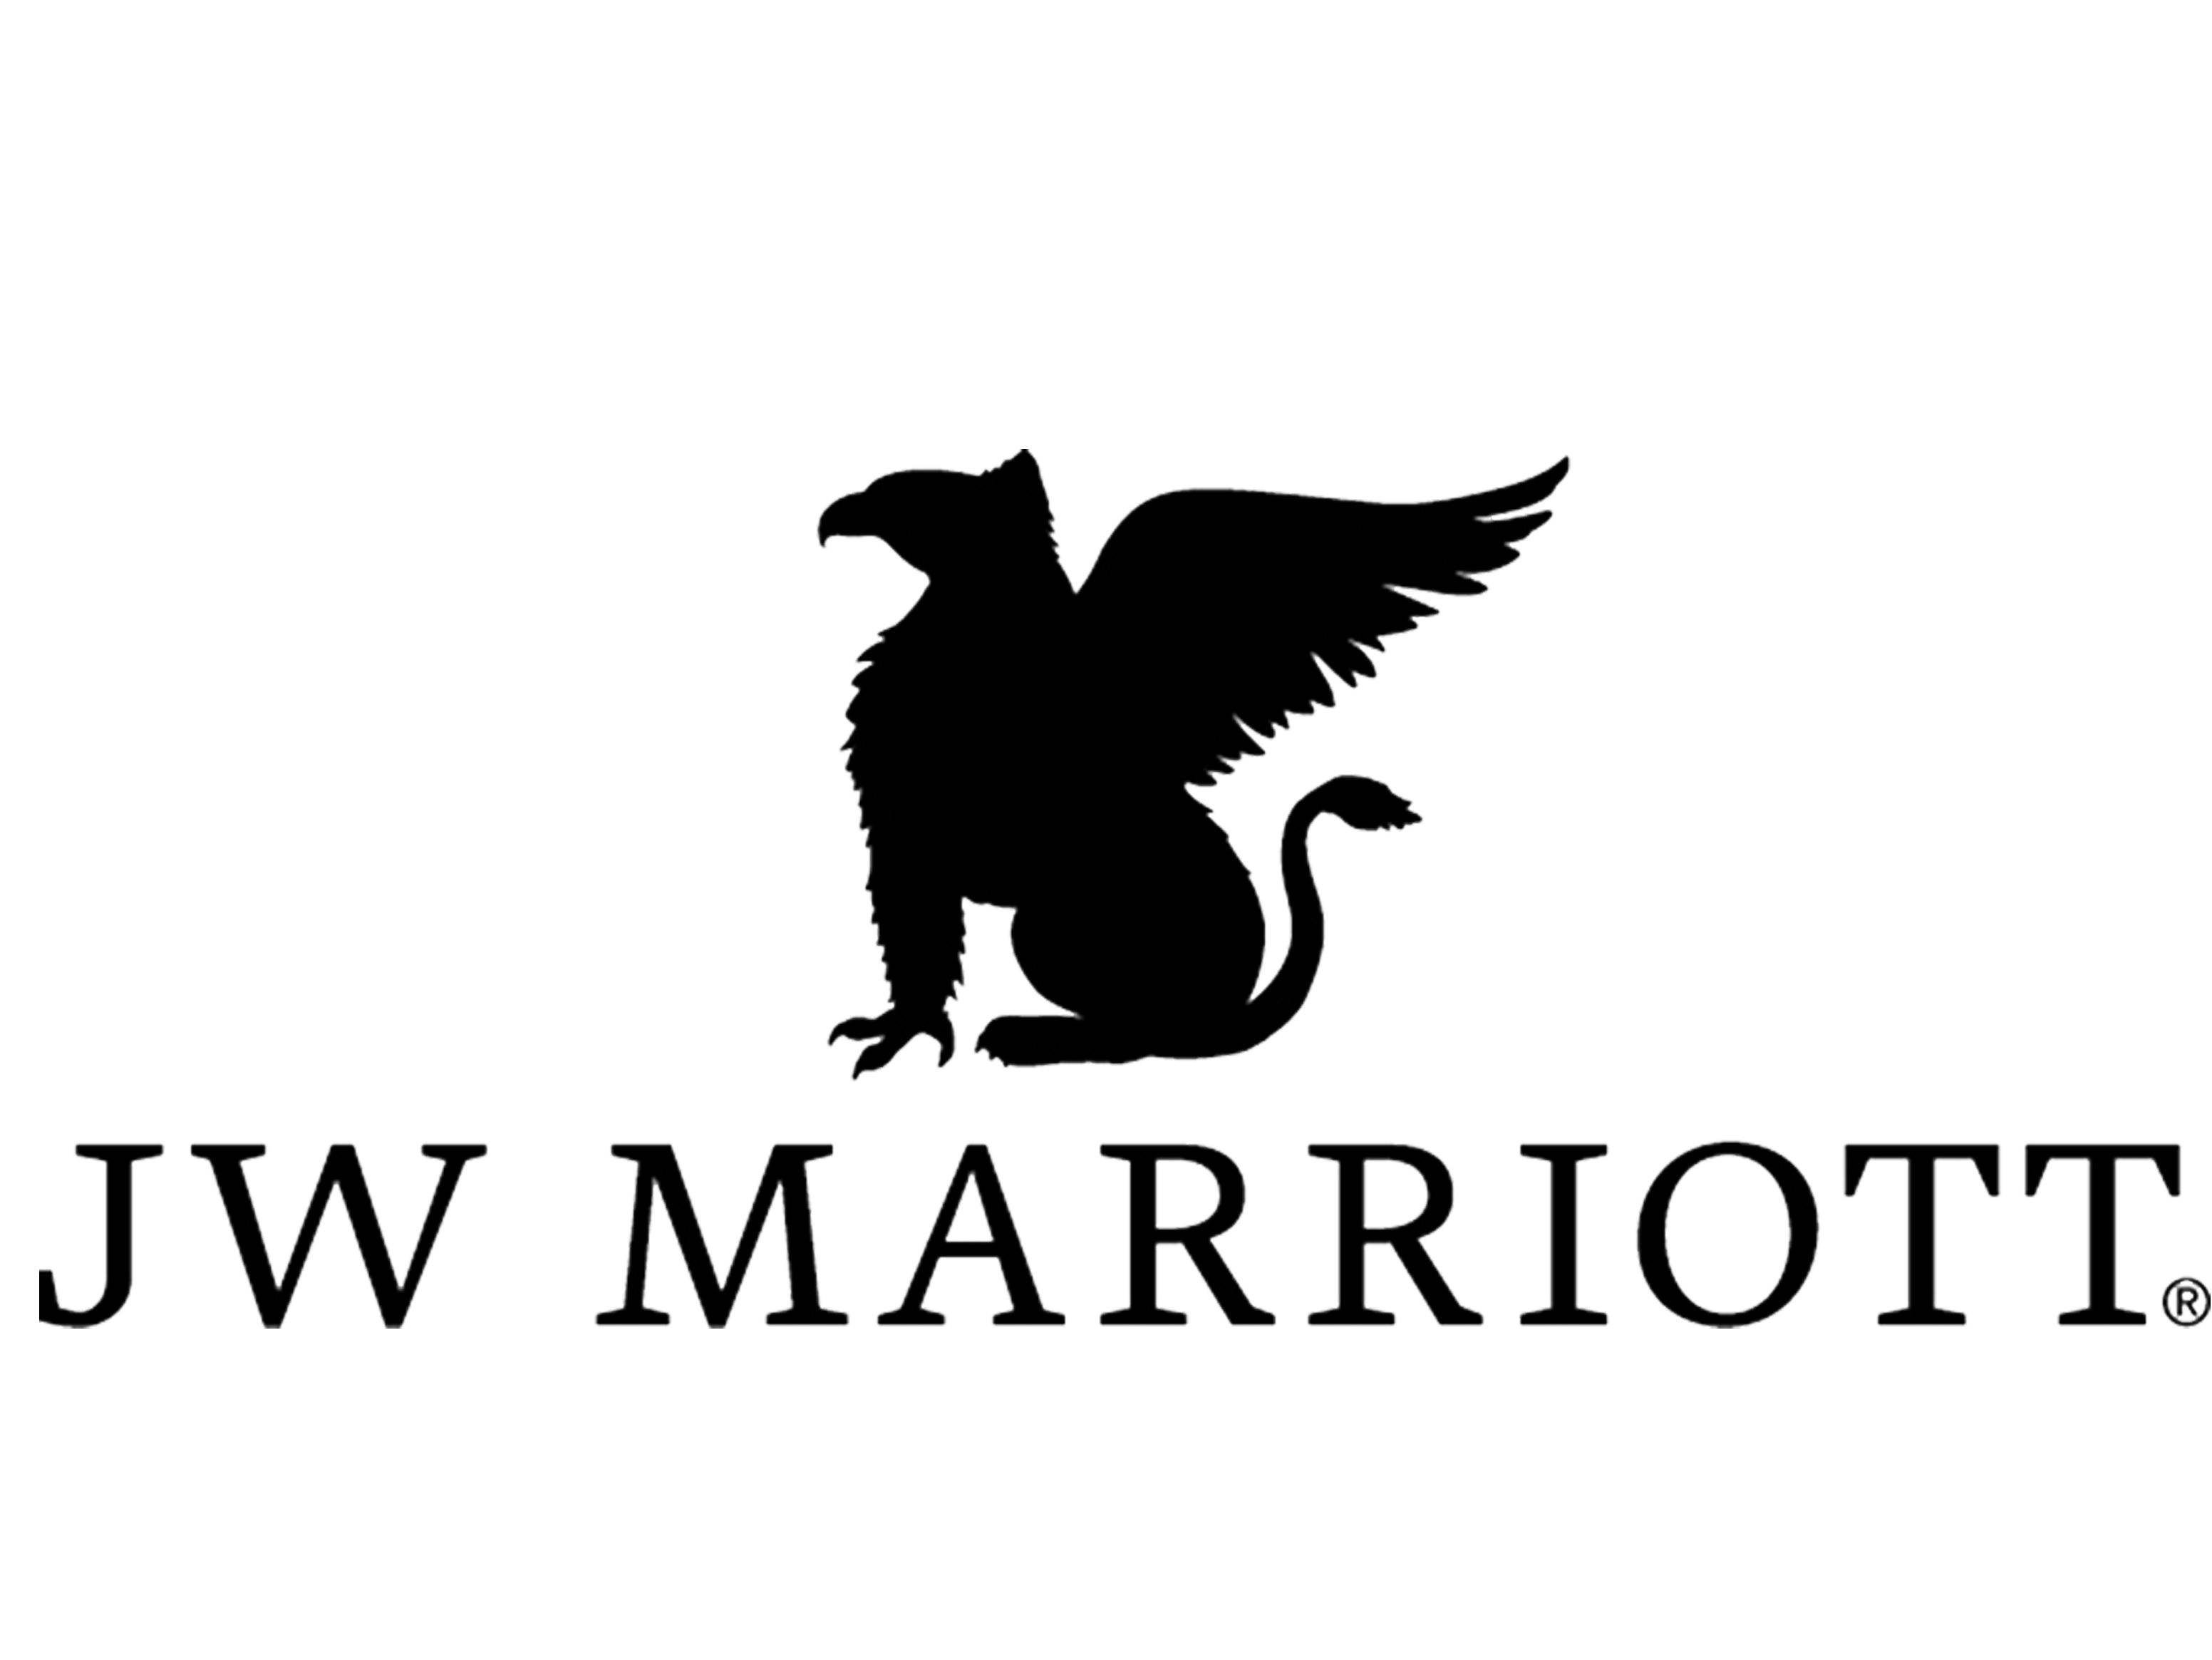 Details: Take advantage of the Senior Citizen discount at Marriott hotels and resorts and get 15% off room rates for persons 62 years or older.